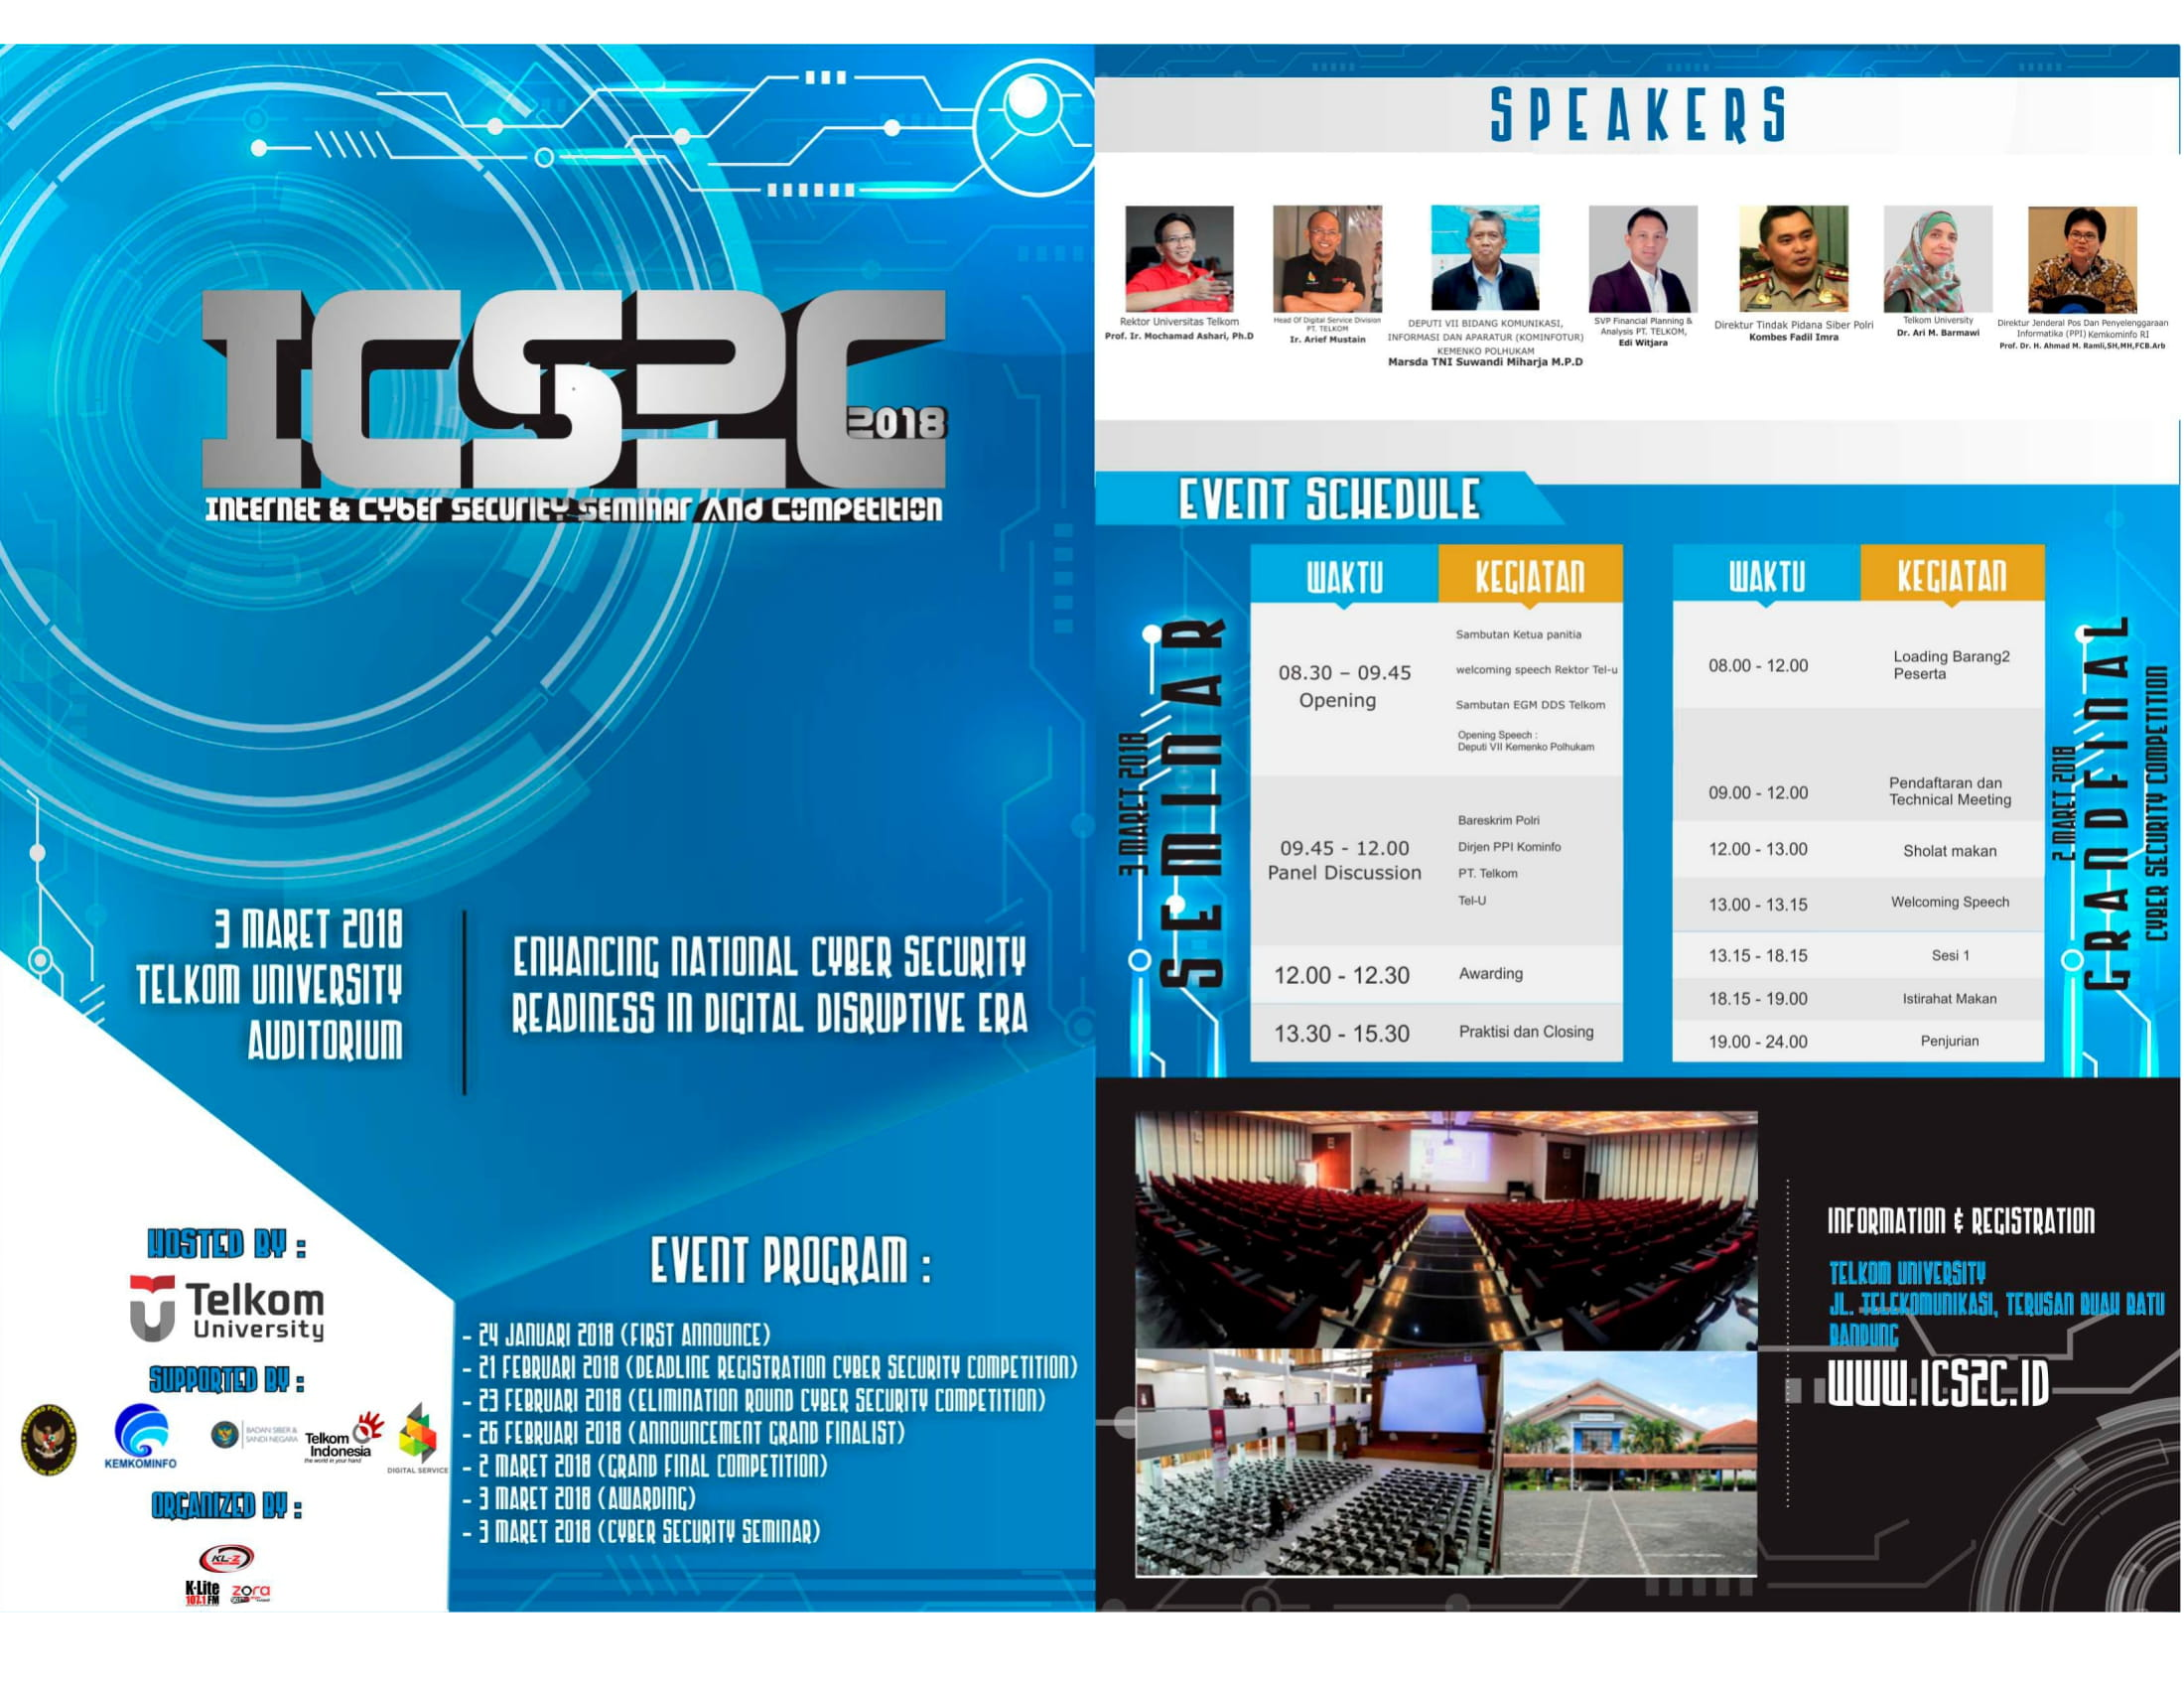 Internet & Cyber Security Seminar and Competition 2018 (ICS2C 2018)